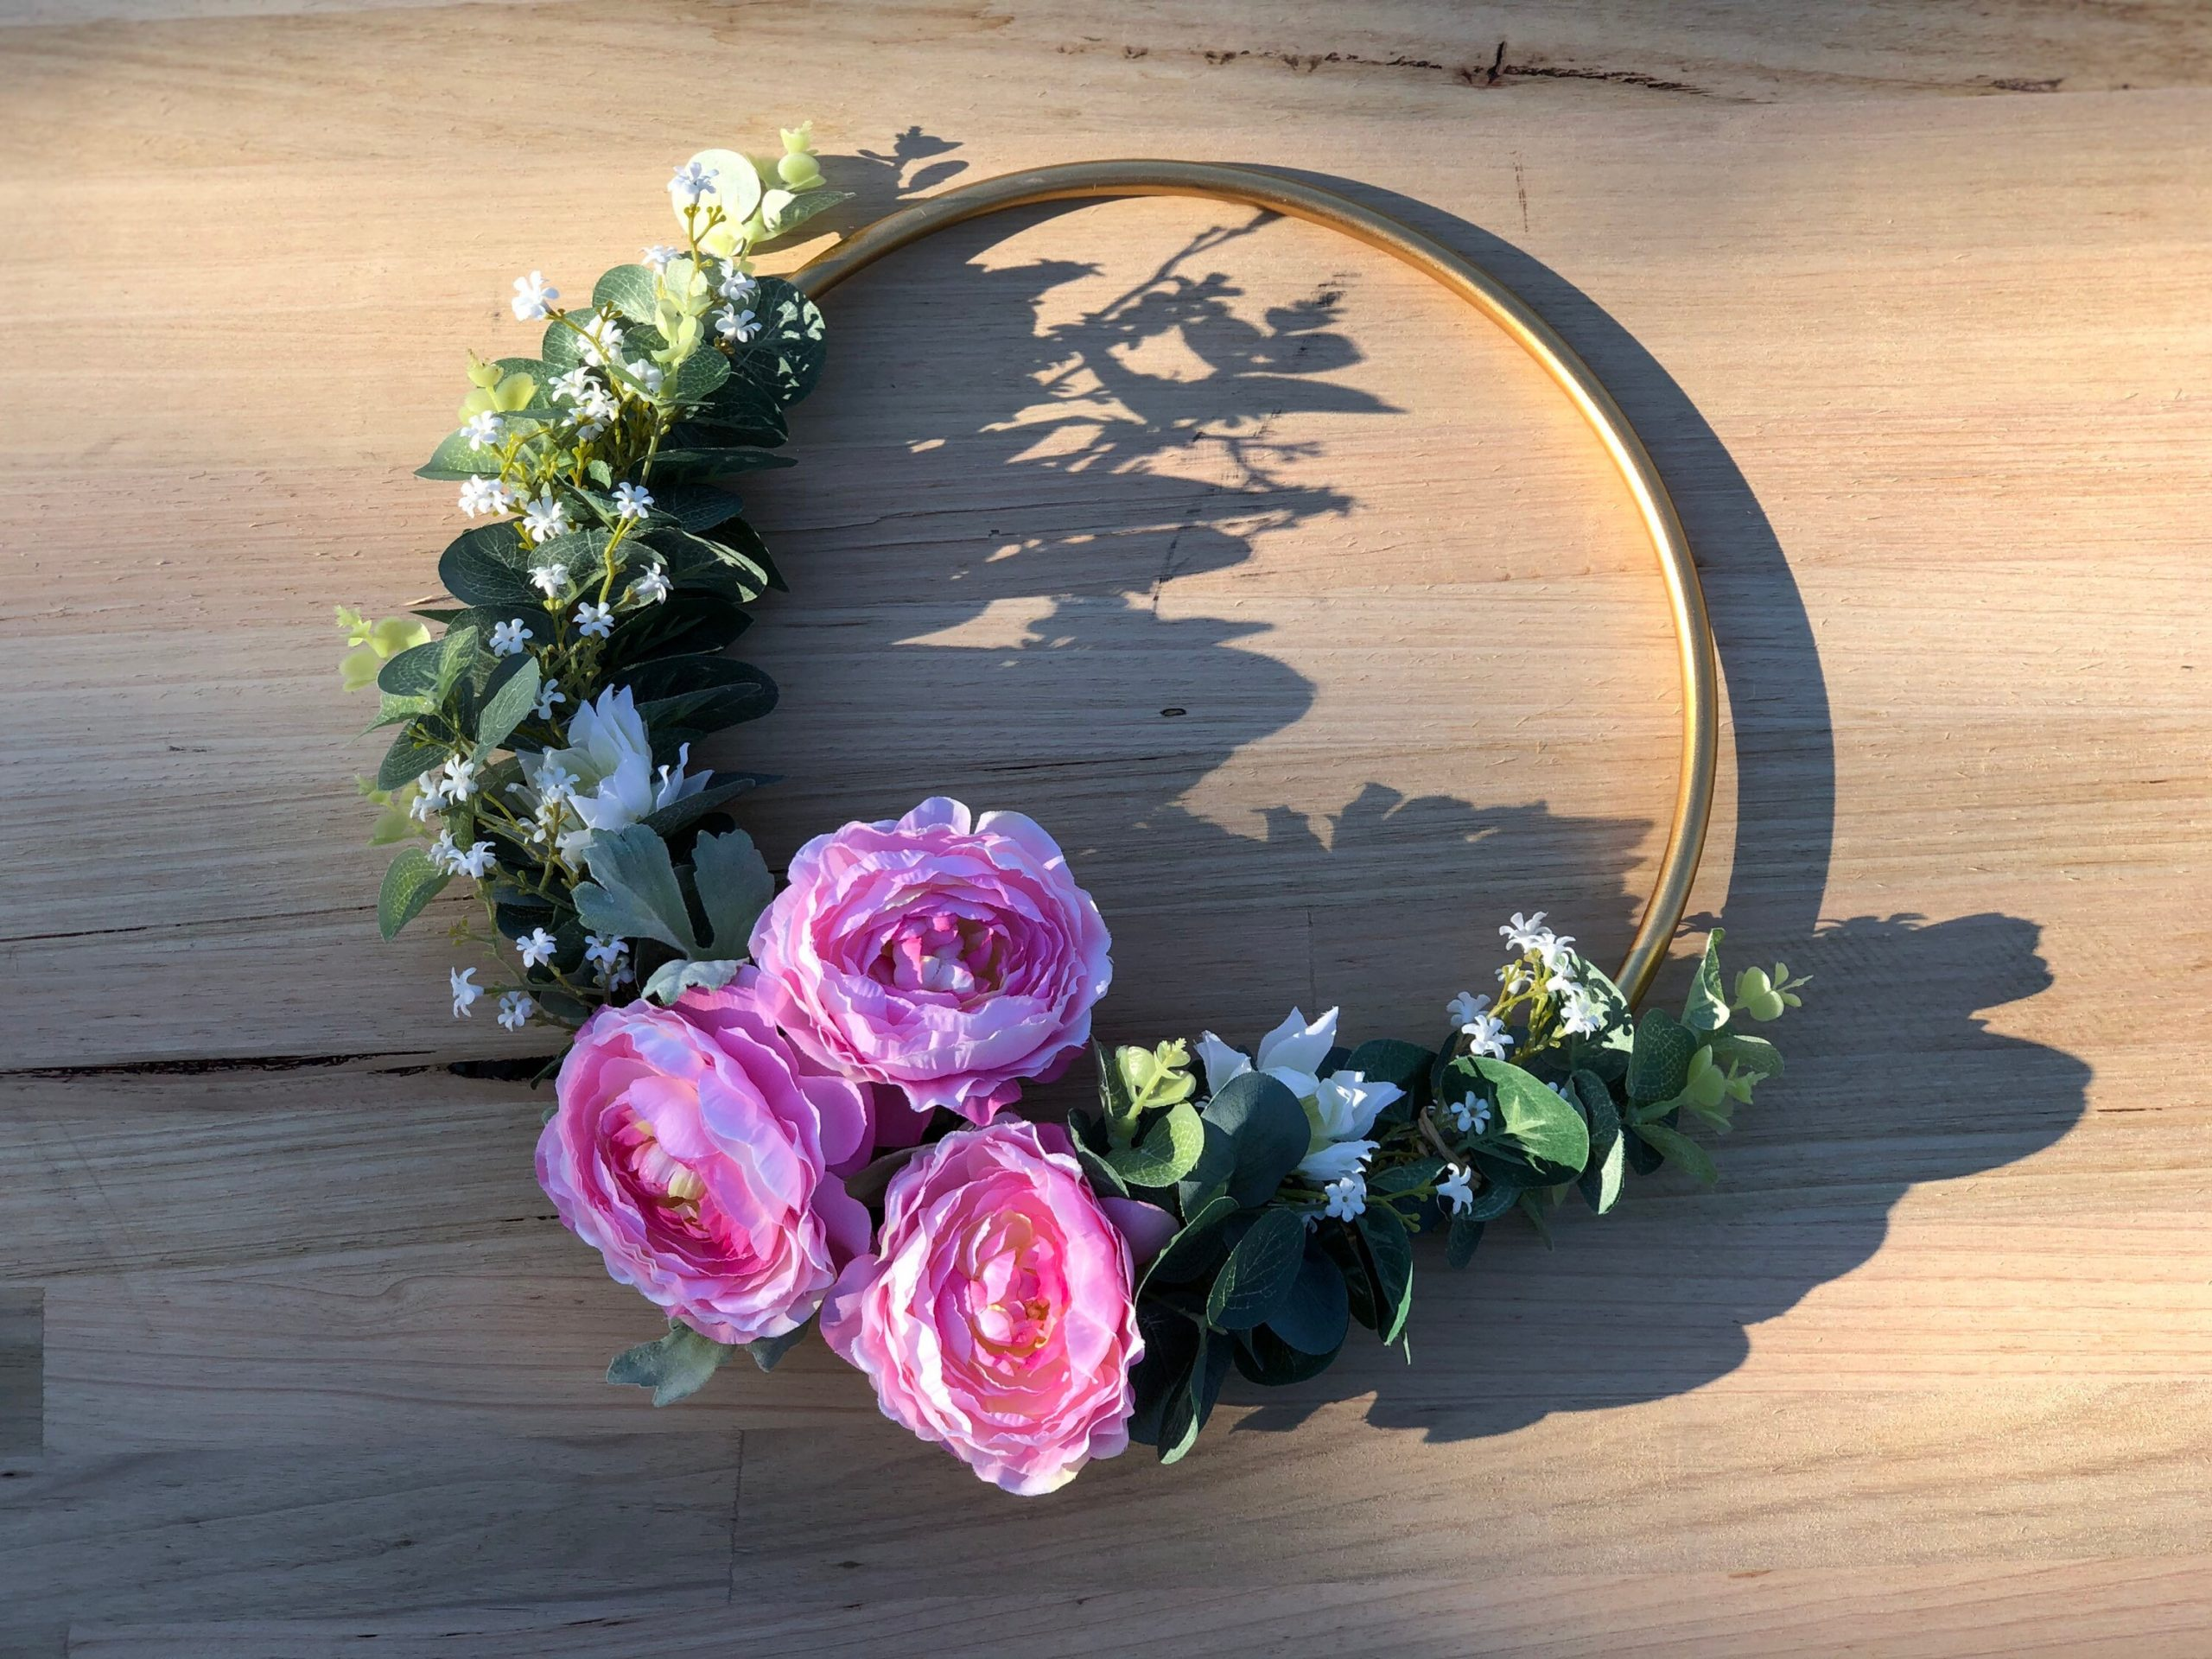 Floral Hoop Wreath -Wedding, Engagement, Wedding Decor, Flower Bouquet, Bride, Girl, Baby Floral Ring, Baby, Wall Decor